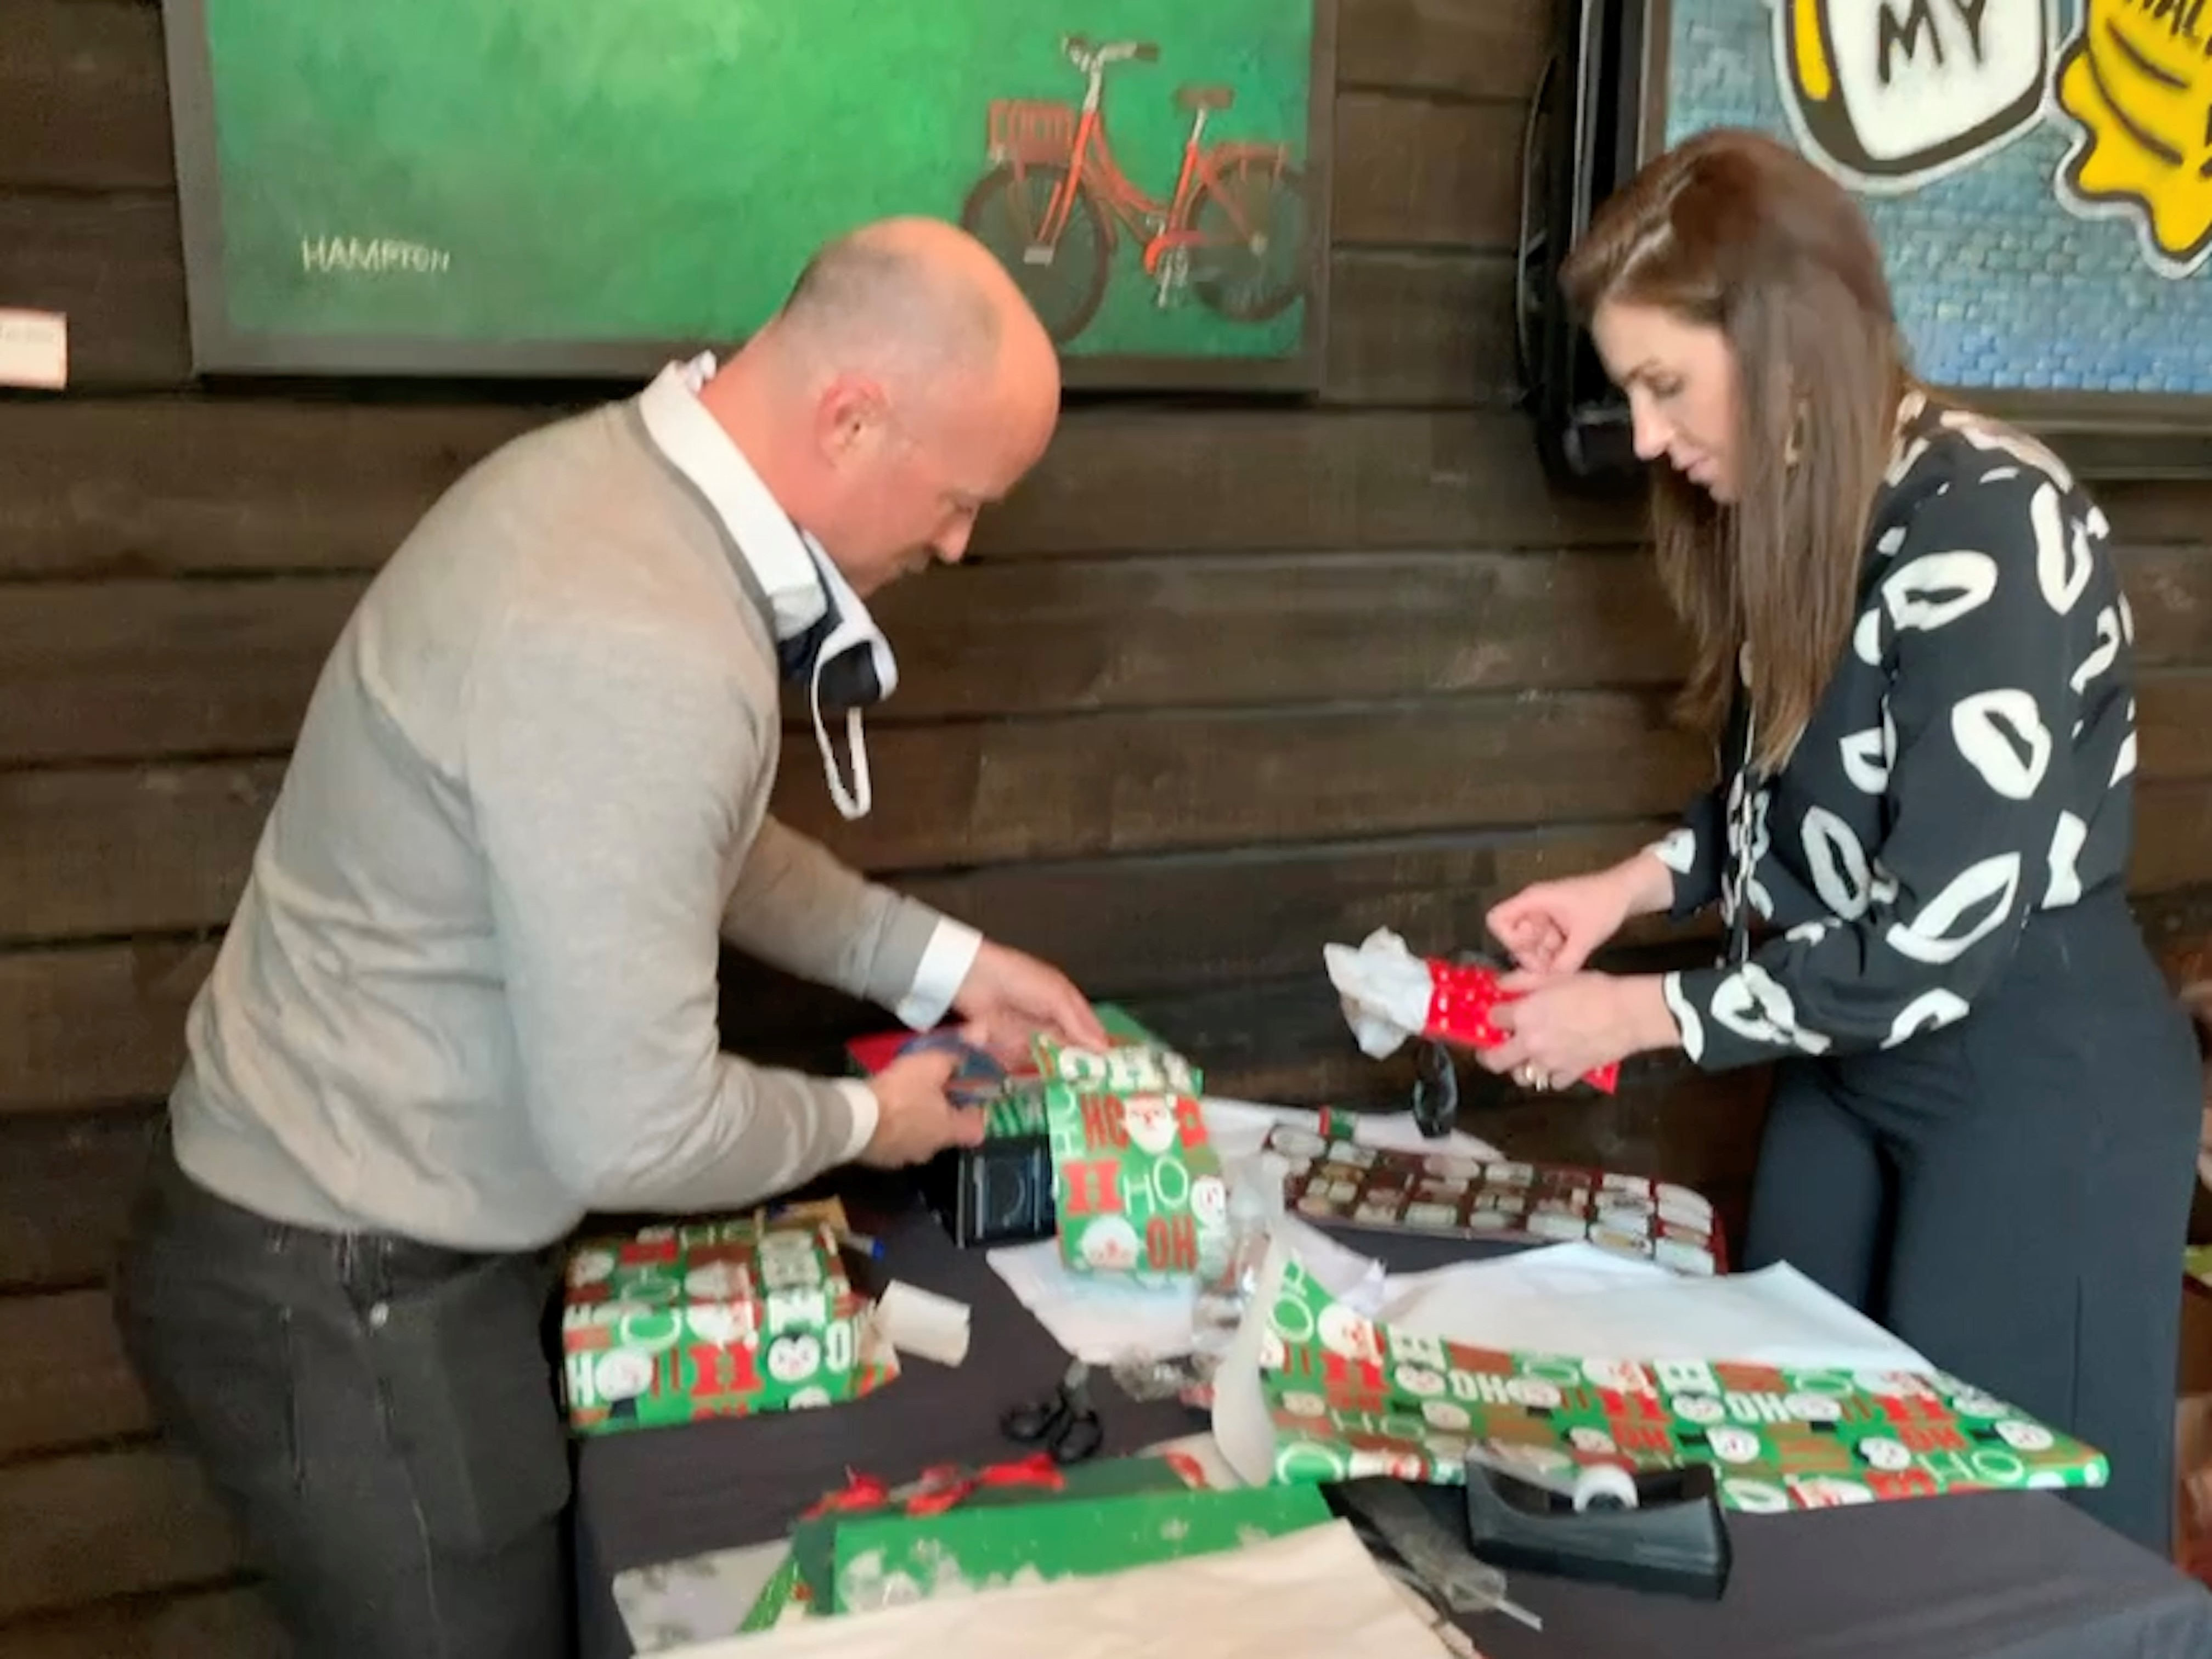 Dr. Piazza and staff wrapping presents at Christmas 2020